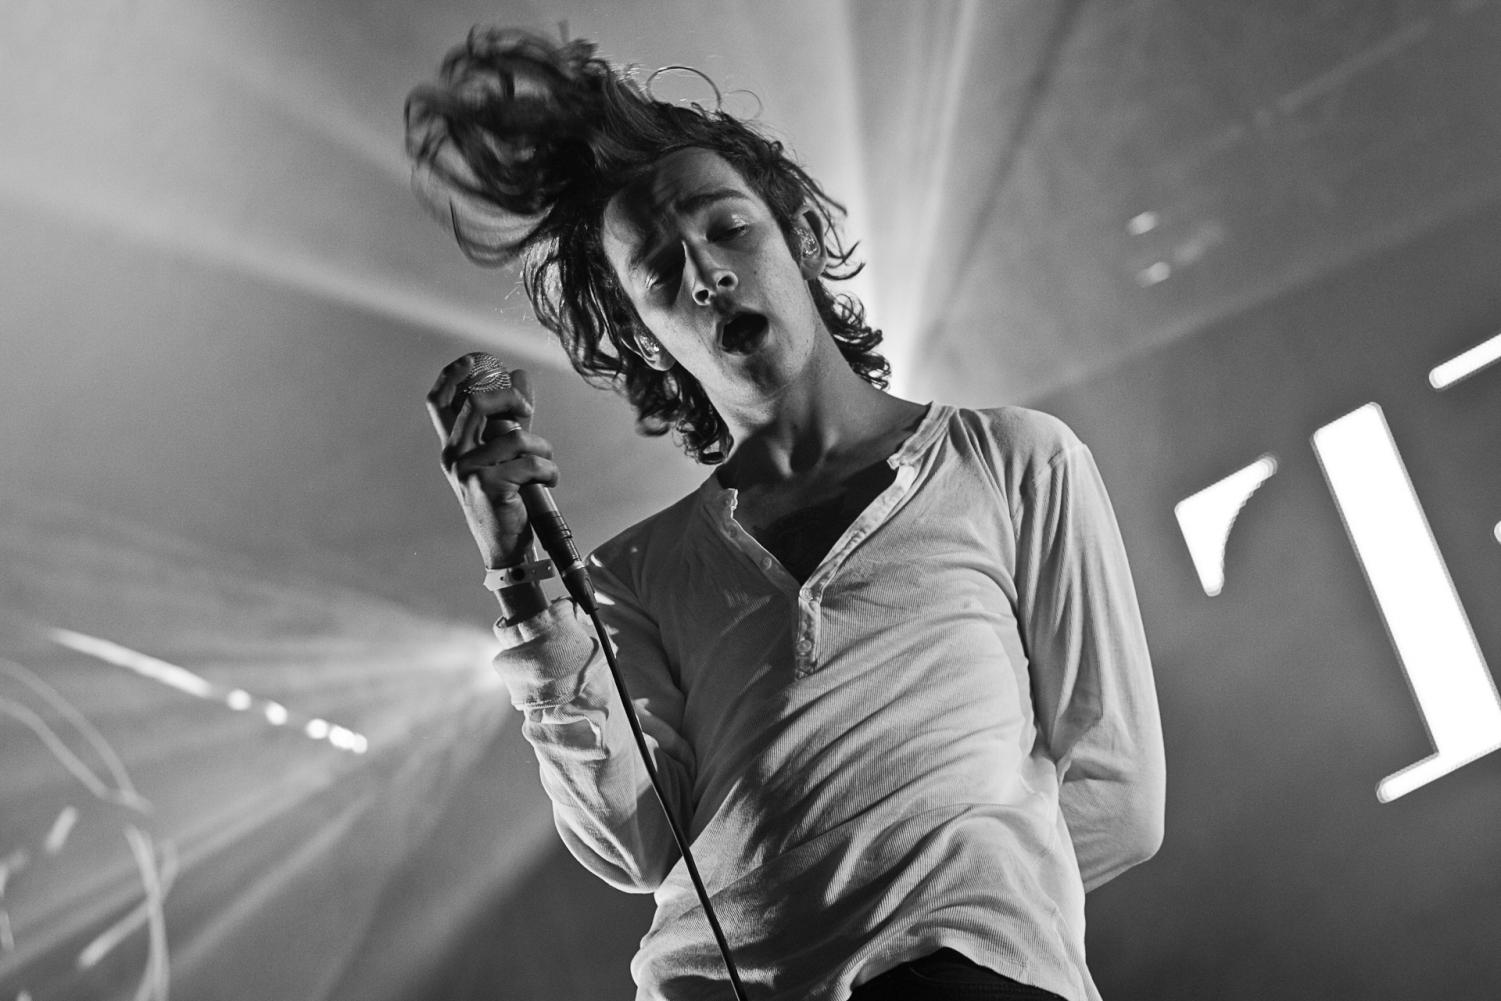 Matthew Healy of The 1975 at Southside Festival in 2014